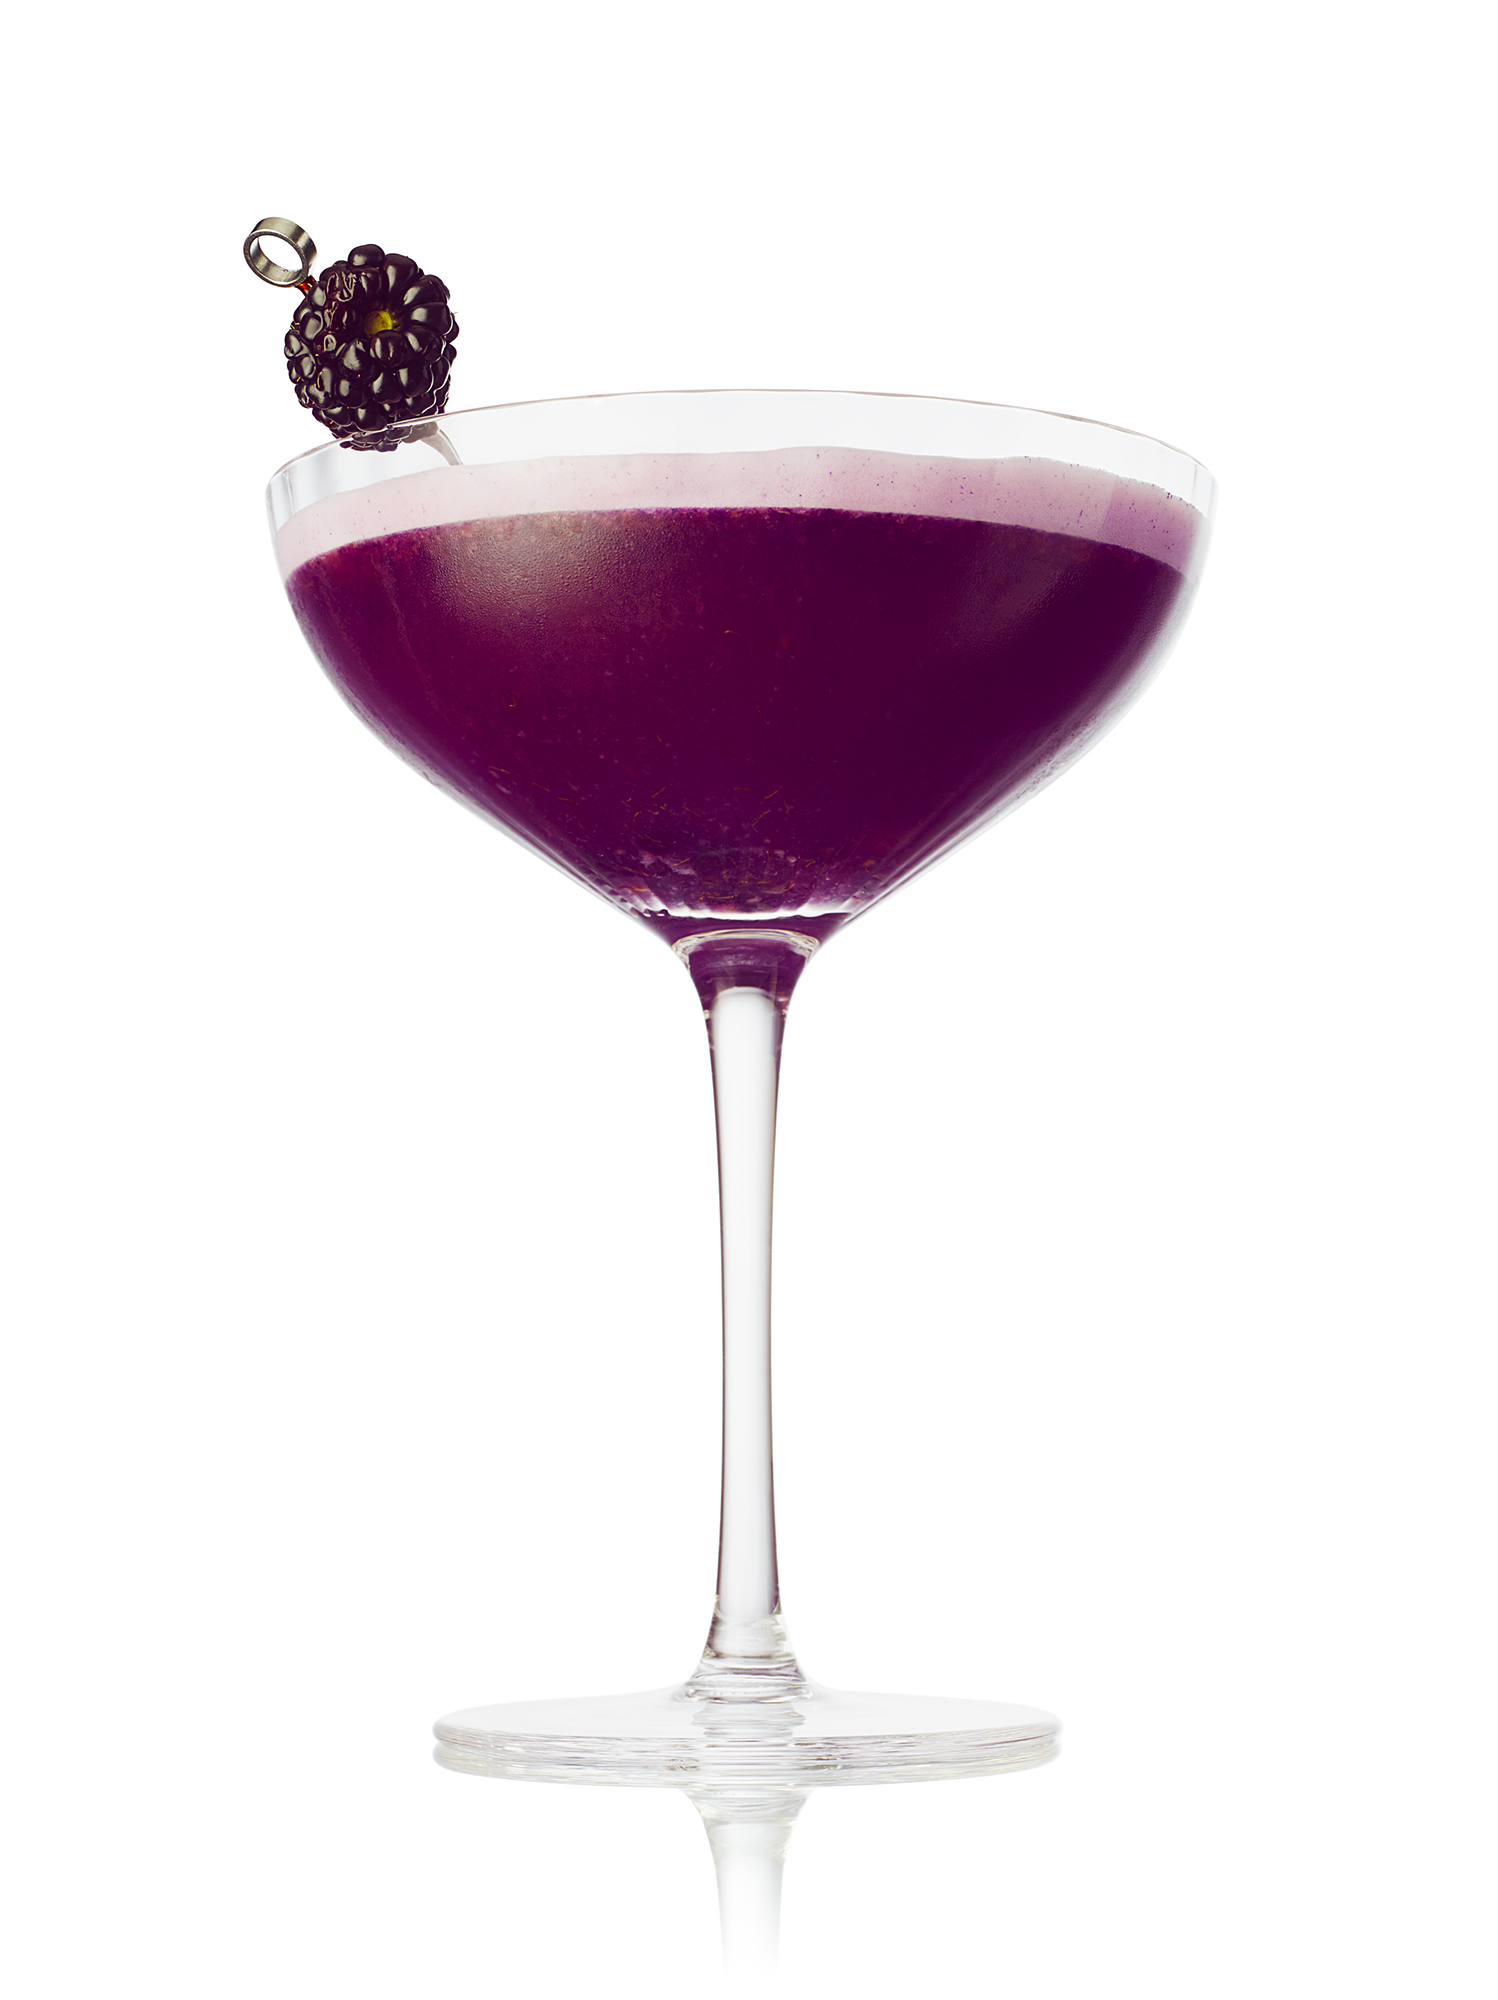 Greenalls_Wild_Berry_Gin_Hedgerow_Romance